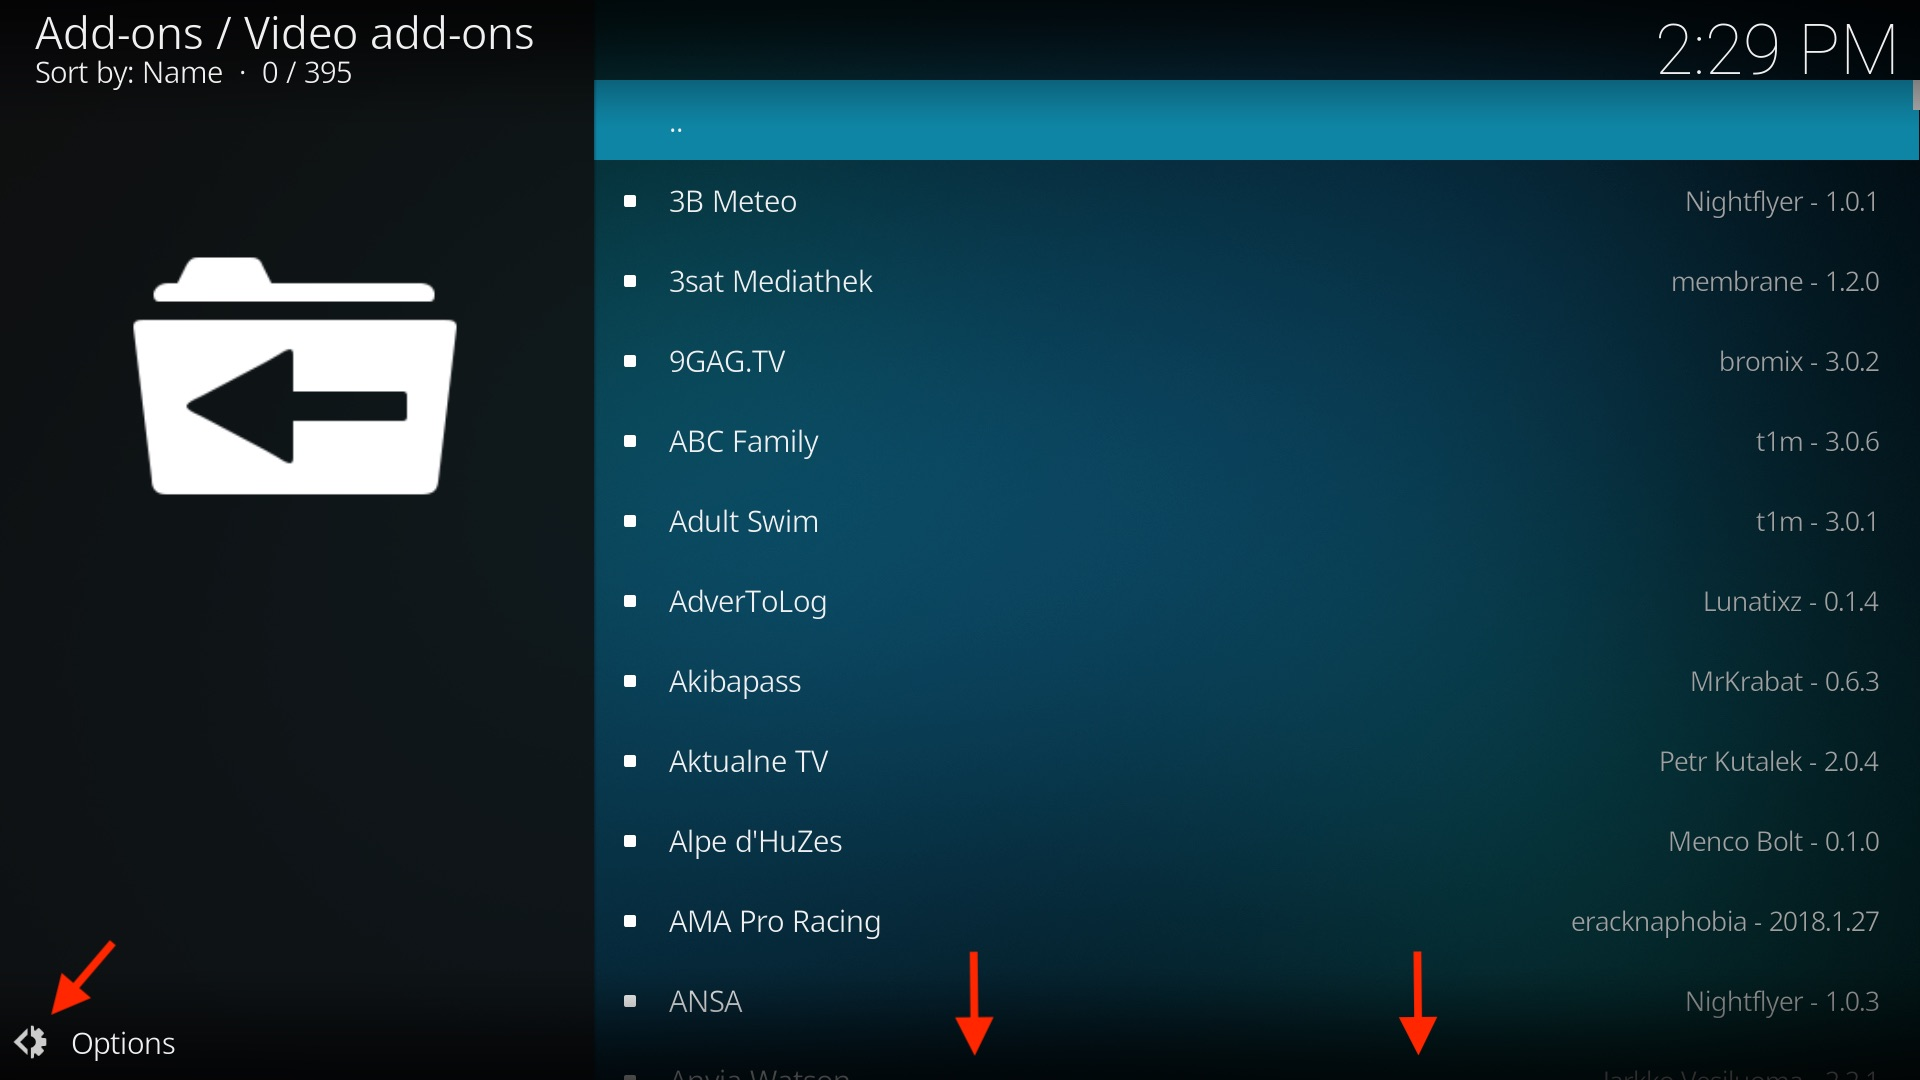 How to Watch Movies on Kodi in 2019 - Pick the Best Kodi Add